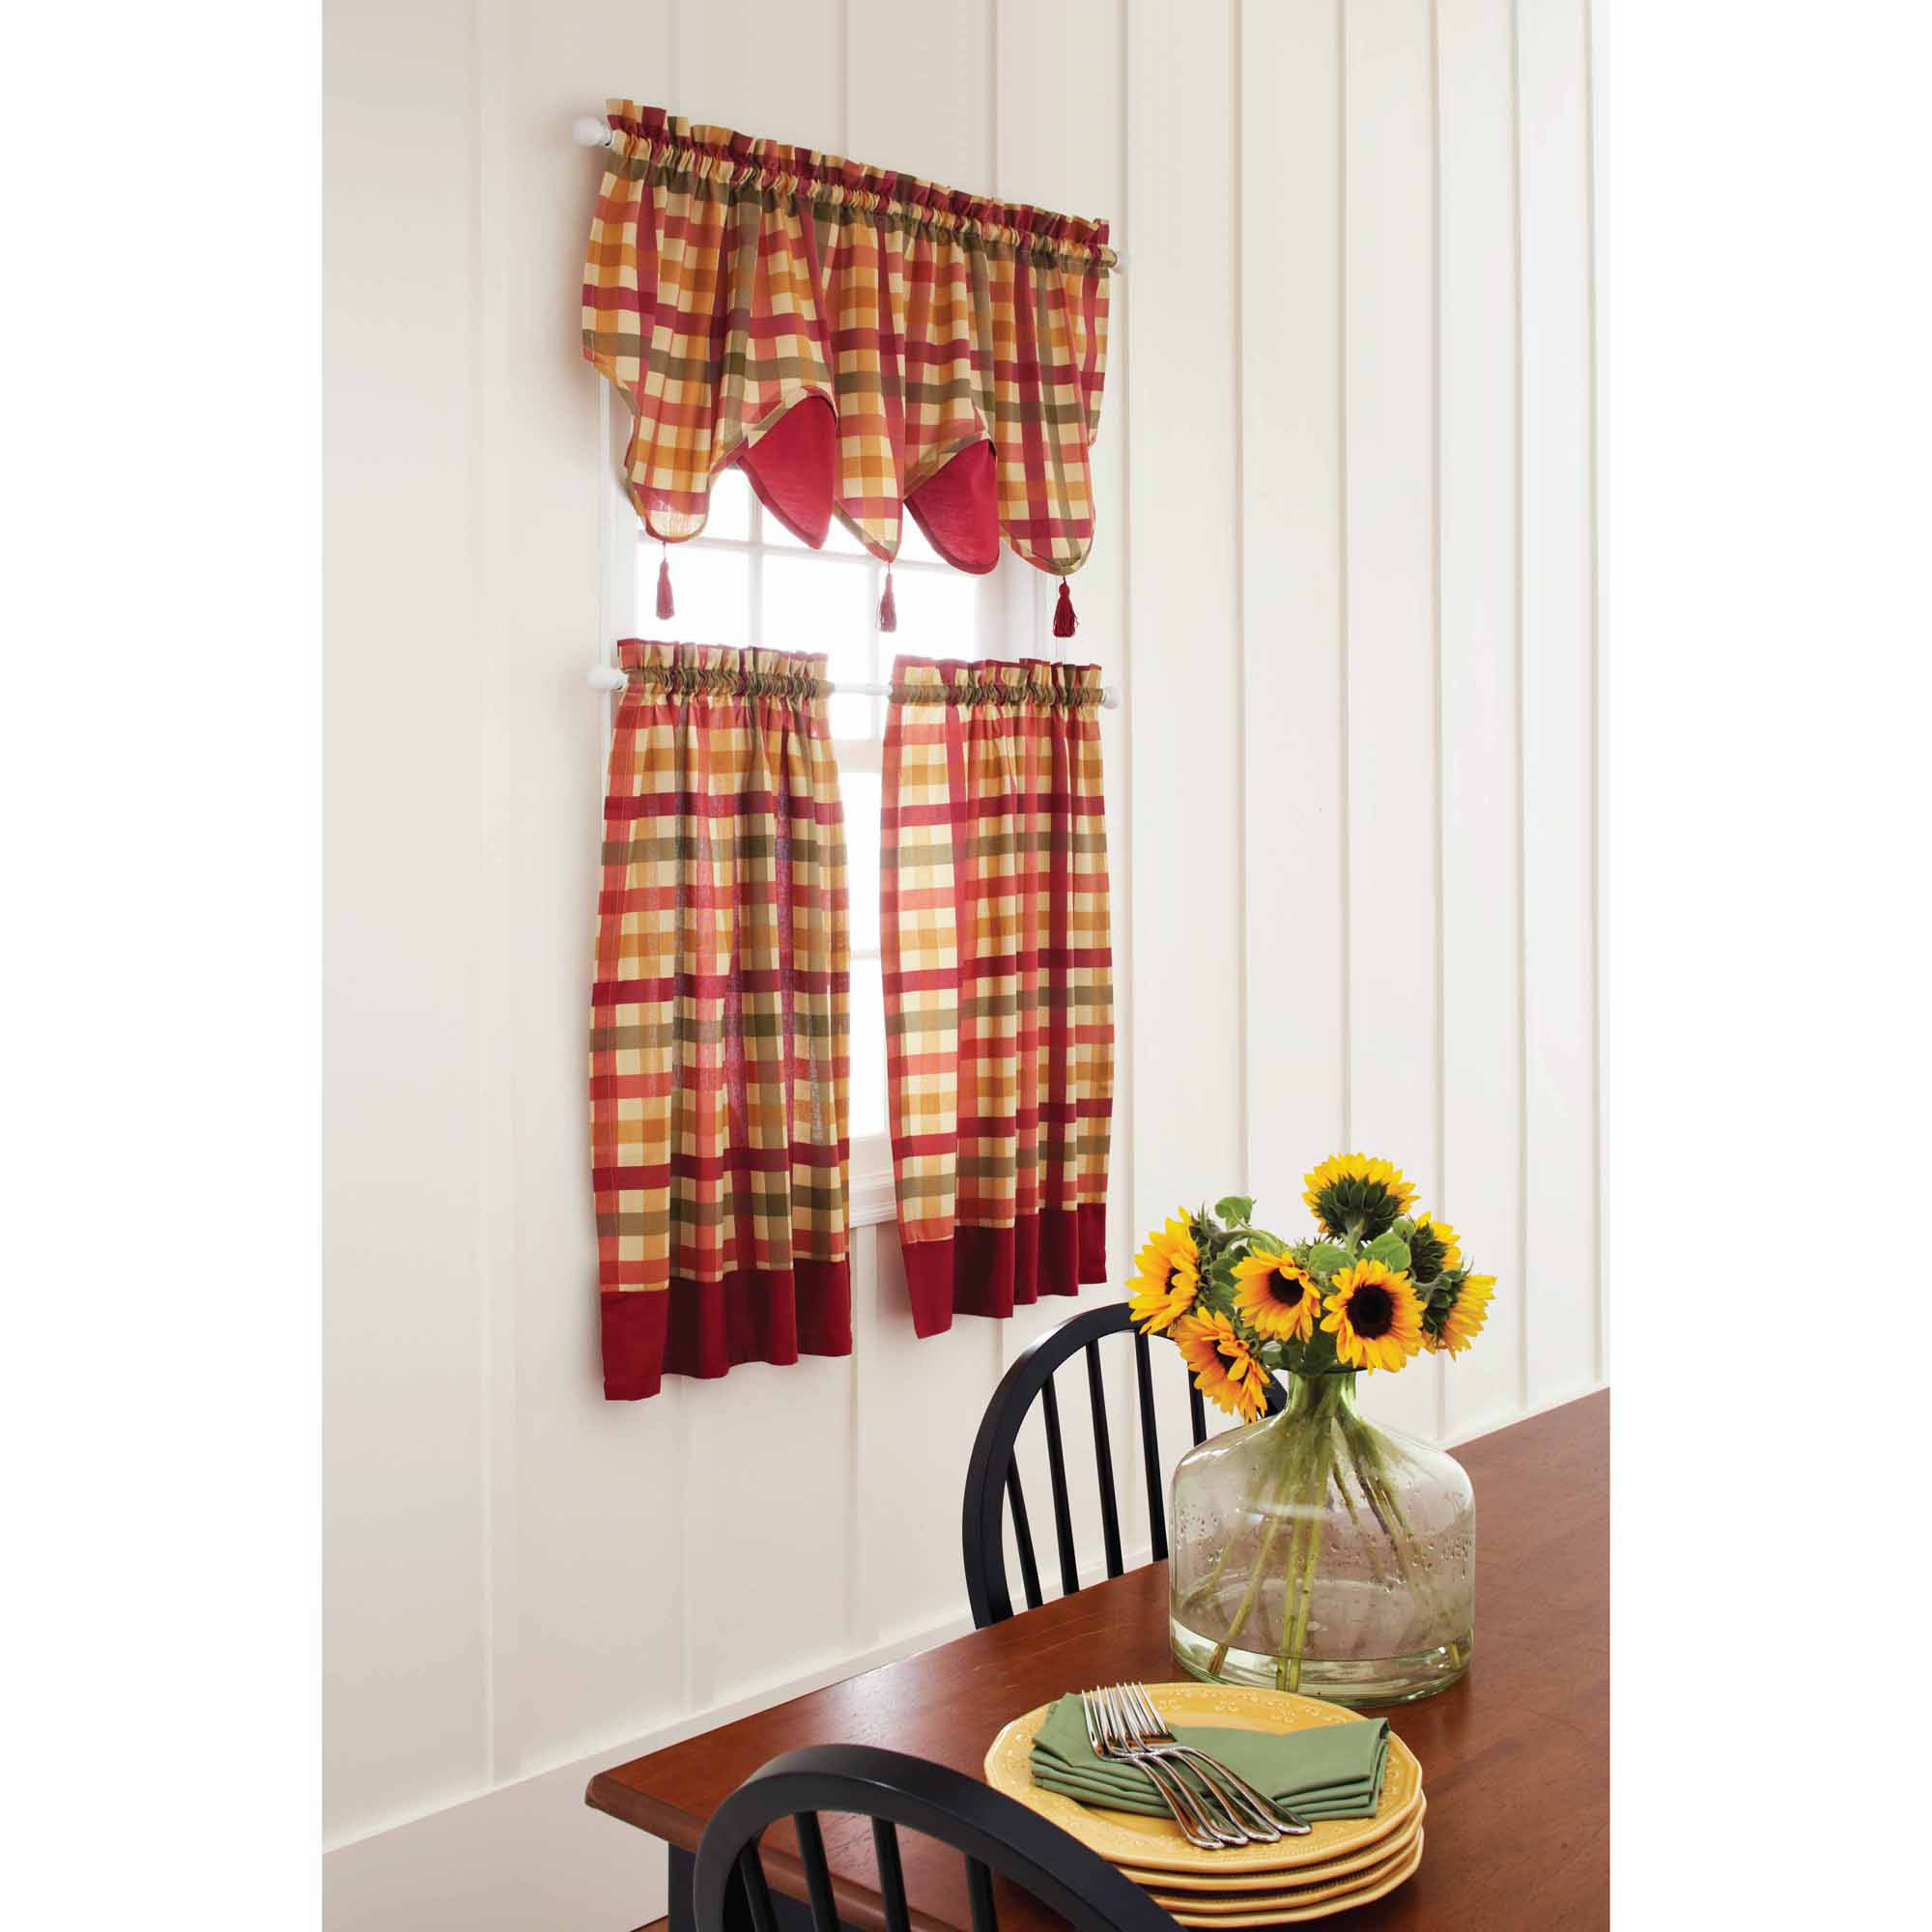 Yellow Kitchen Curtain Sets – Martinique Pertaining To Bermuda Ruffle Kitchen Curtain Tier Sets (Gallery 15 of 20)